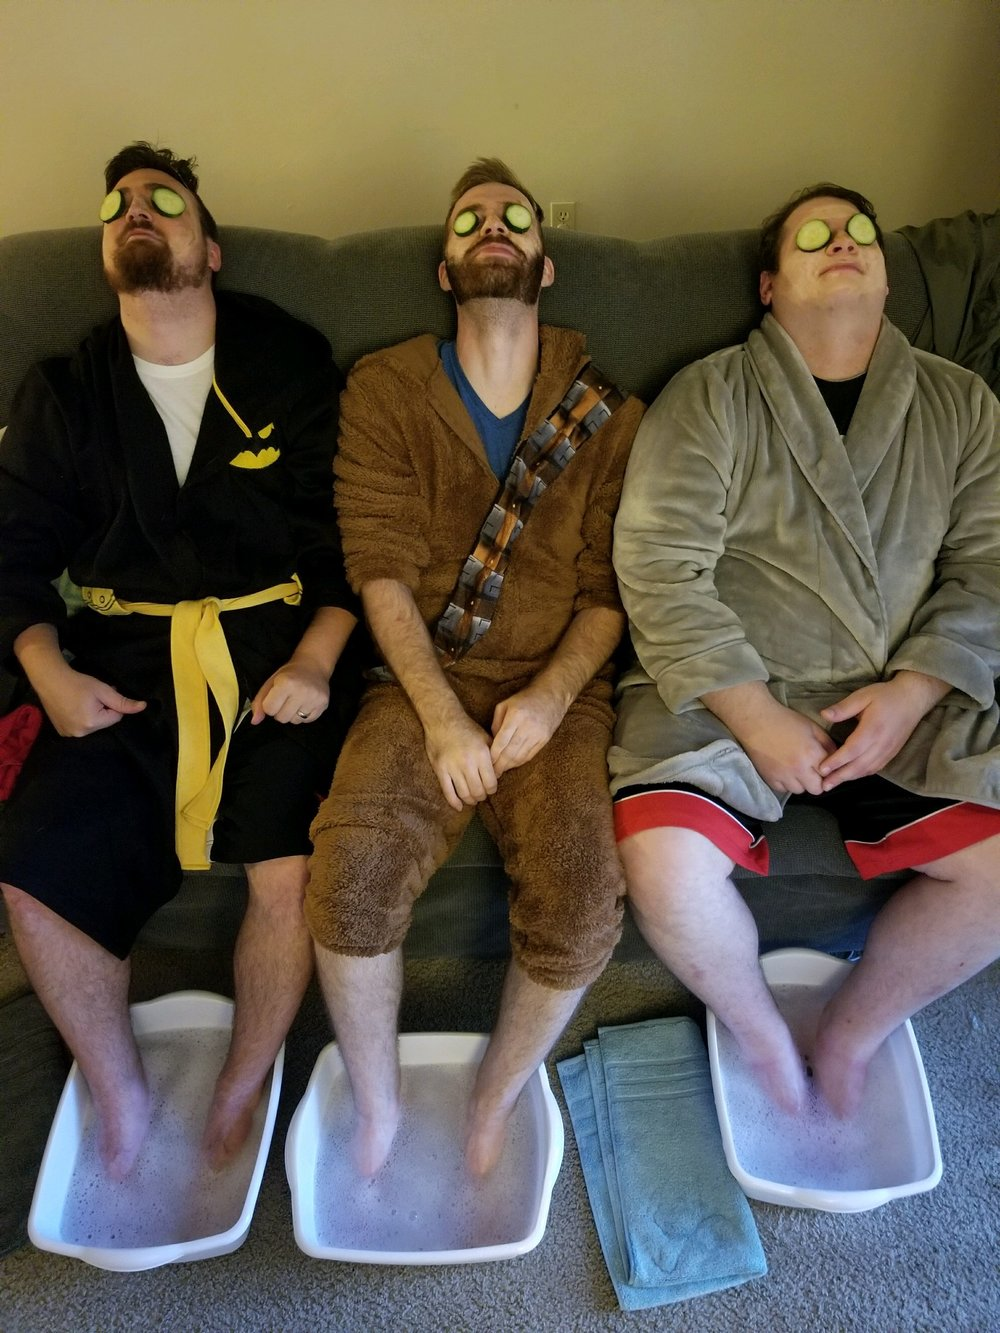 From left to right we have Erik, Mitch and Nick enjoying their at-home spa day.